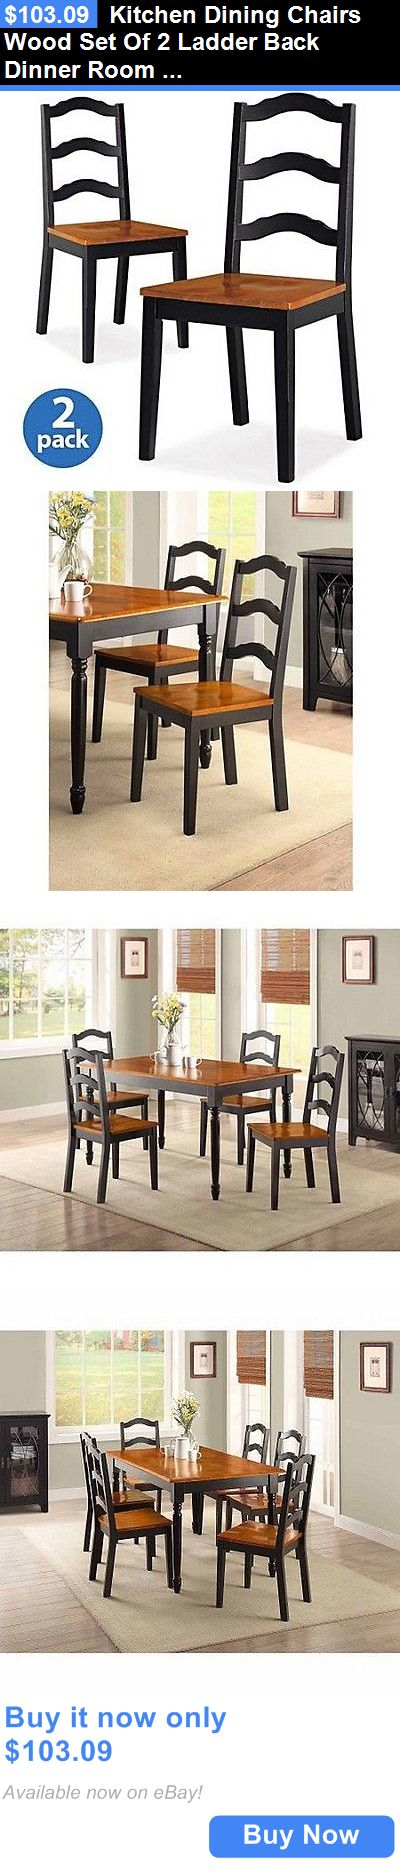 furniture: Kitchen Dining Chairs Wood Set Of 2 Ladder Back Dinner Room Furniture Black Home BUY IT NOW ONLY: $103.09